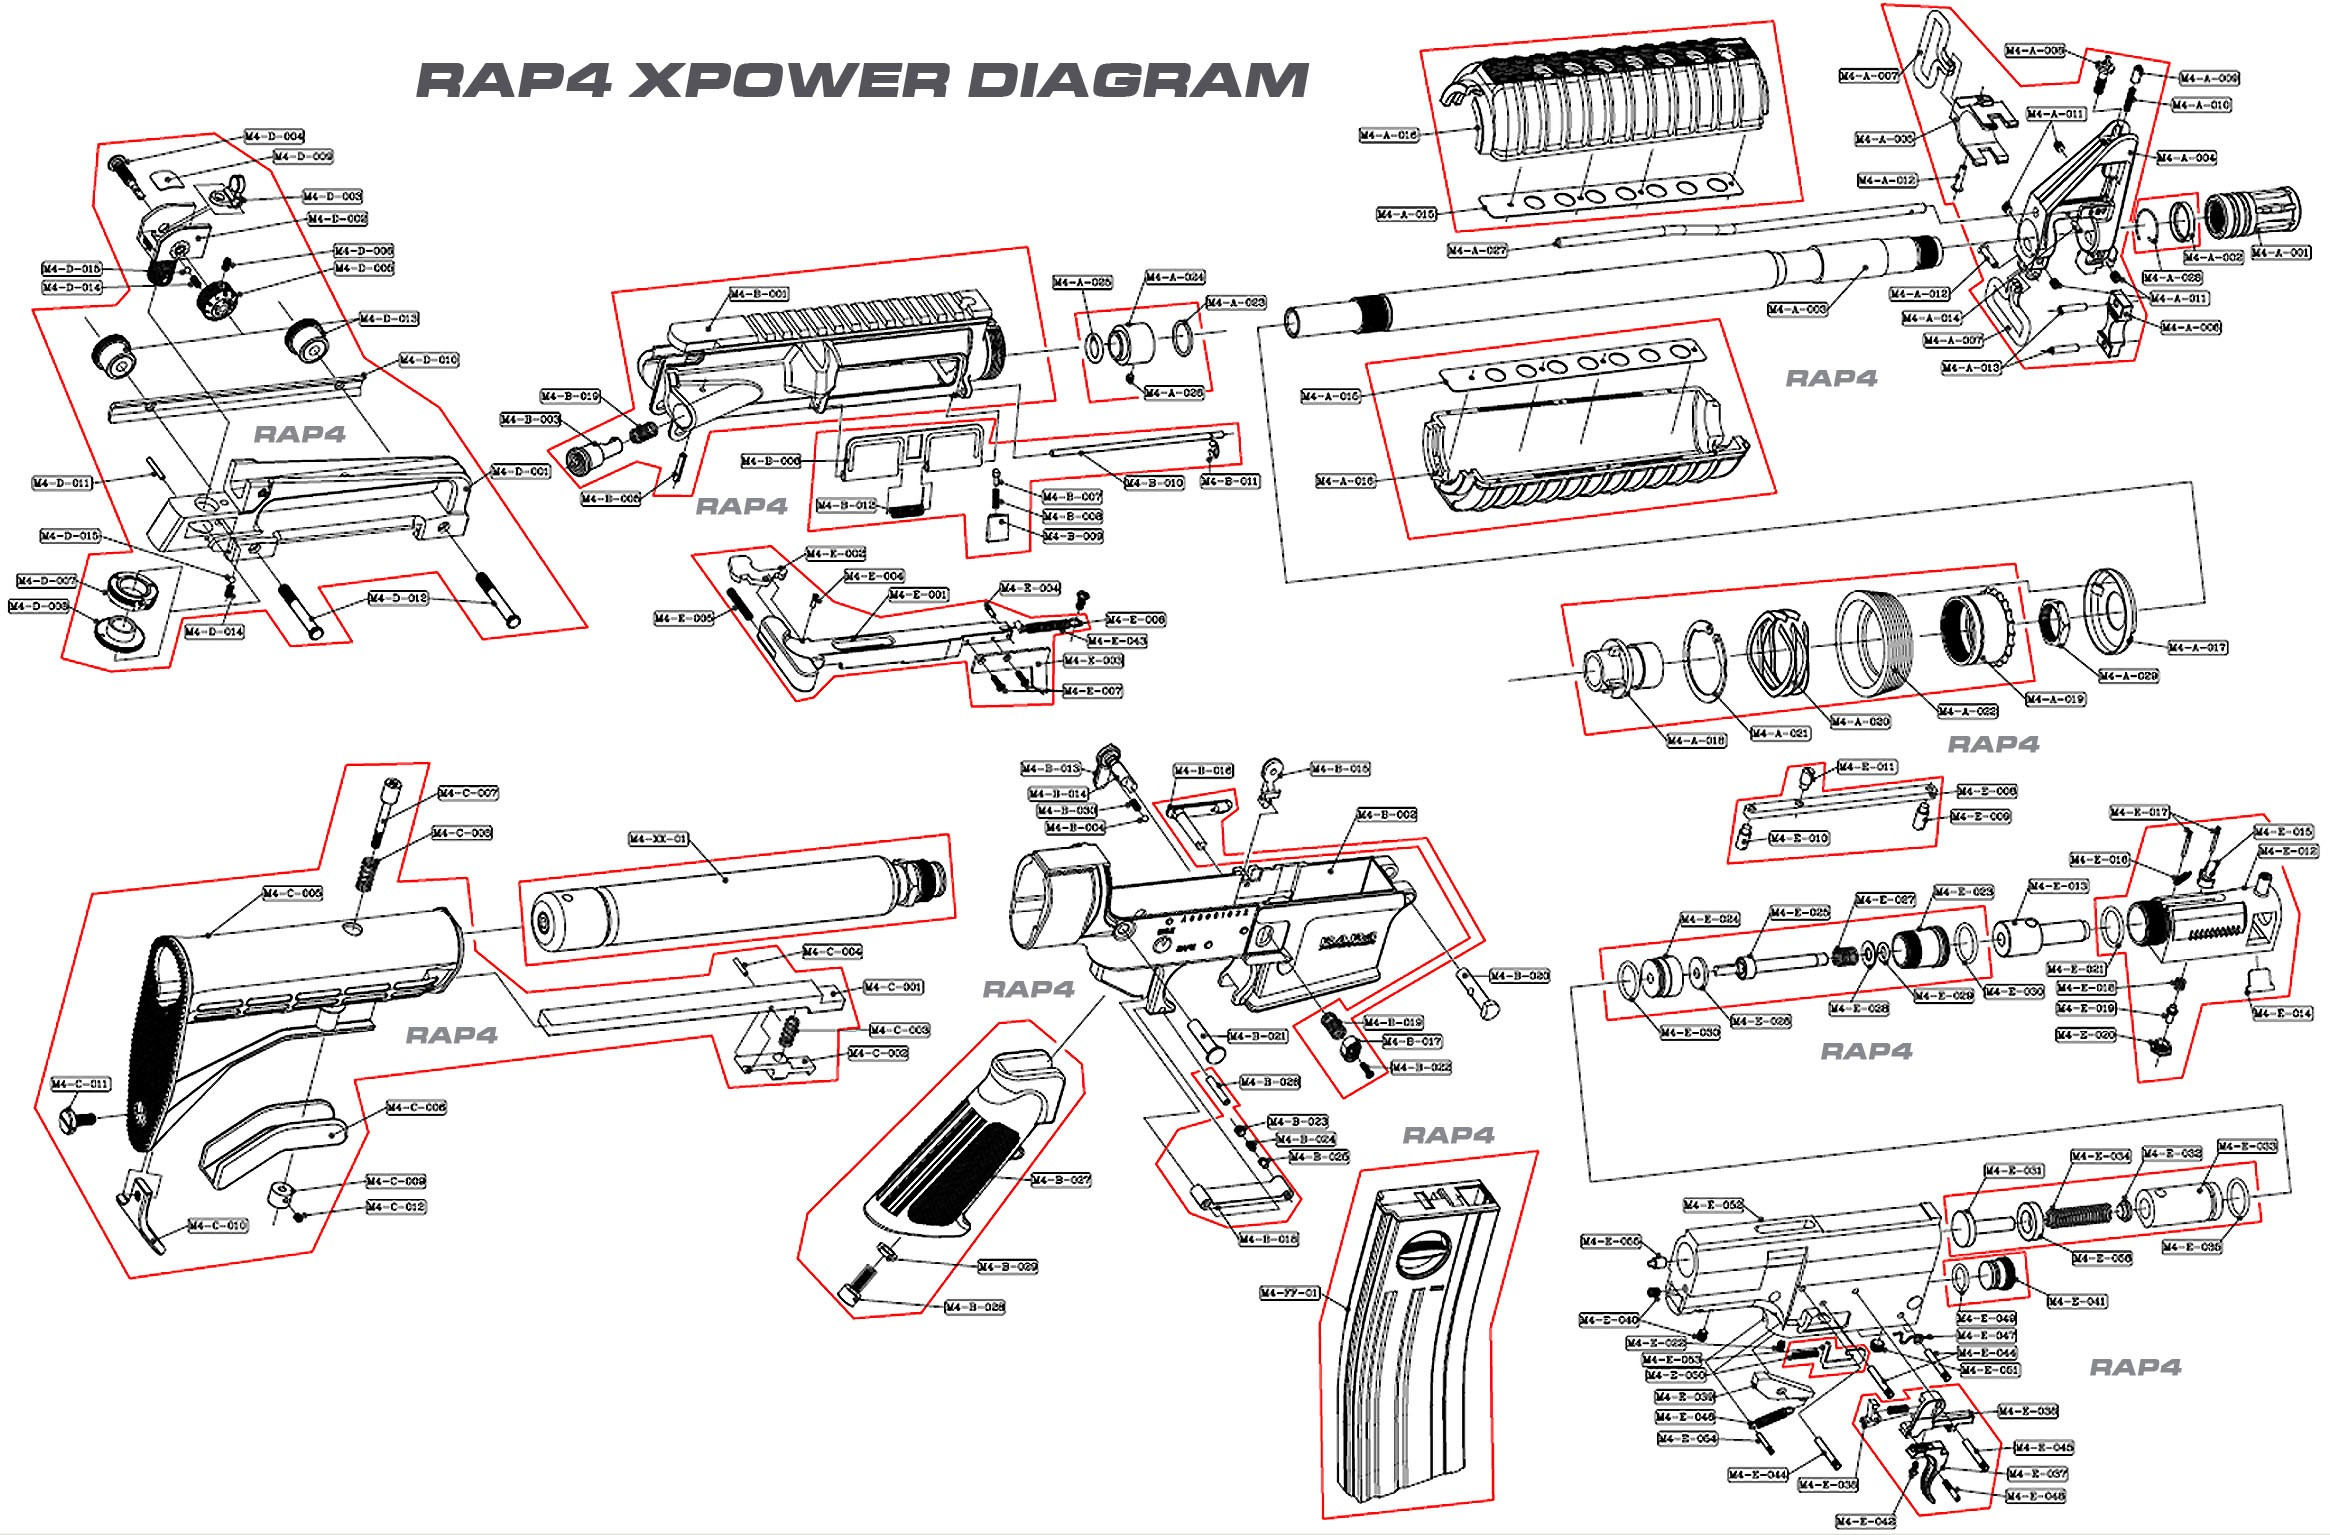 Jeep Engine Parts Diagram Kawasaki Diagrams Fh680v M4 Carbine Schematic Military Pinterest Of